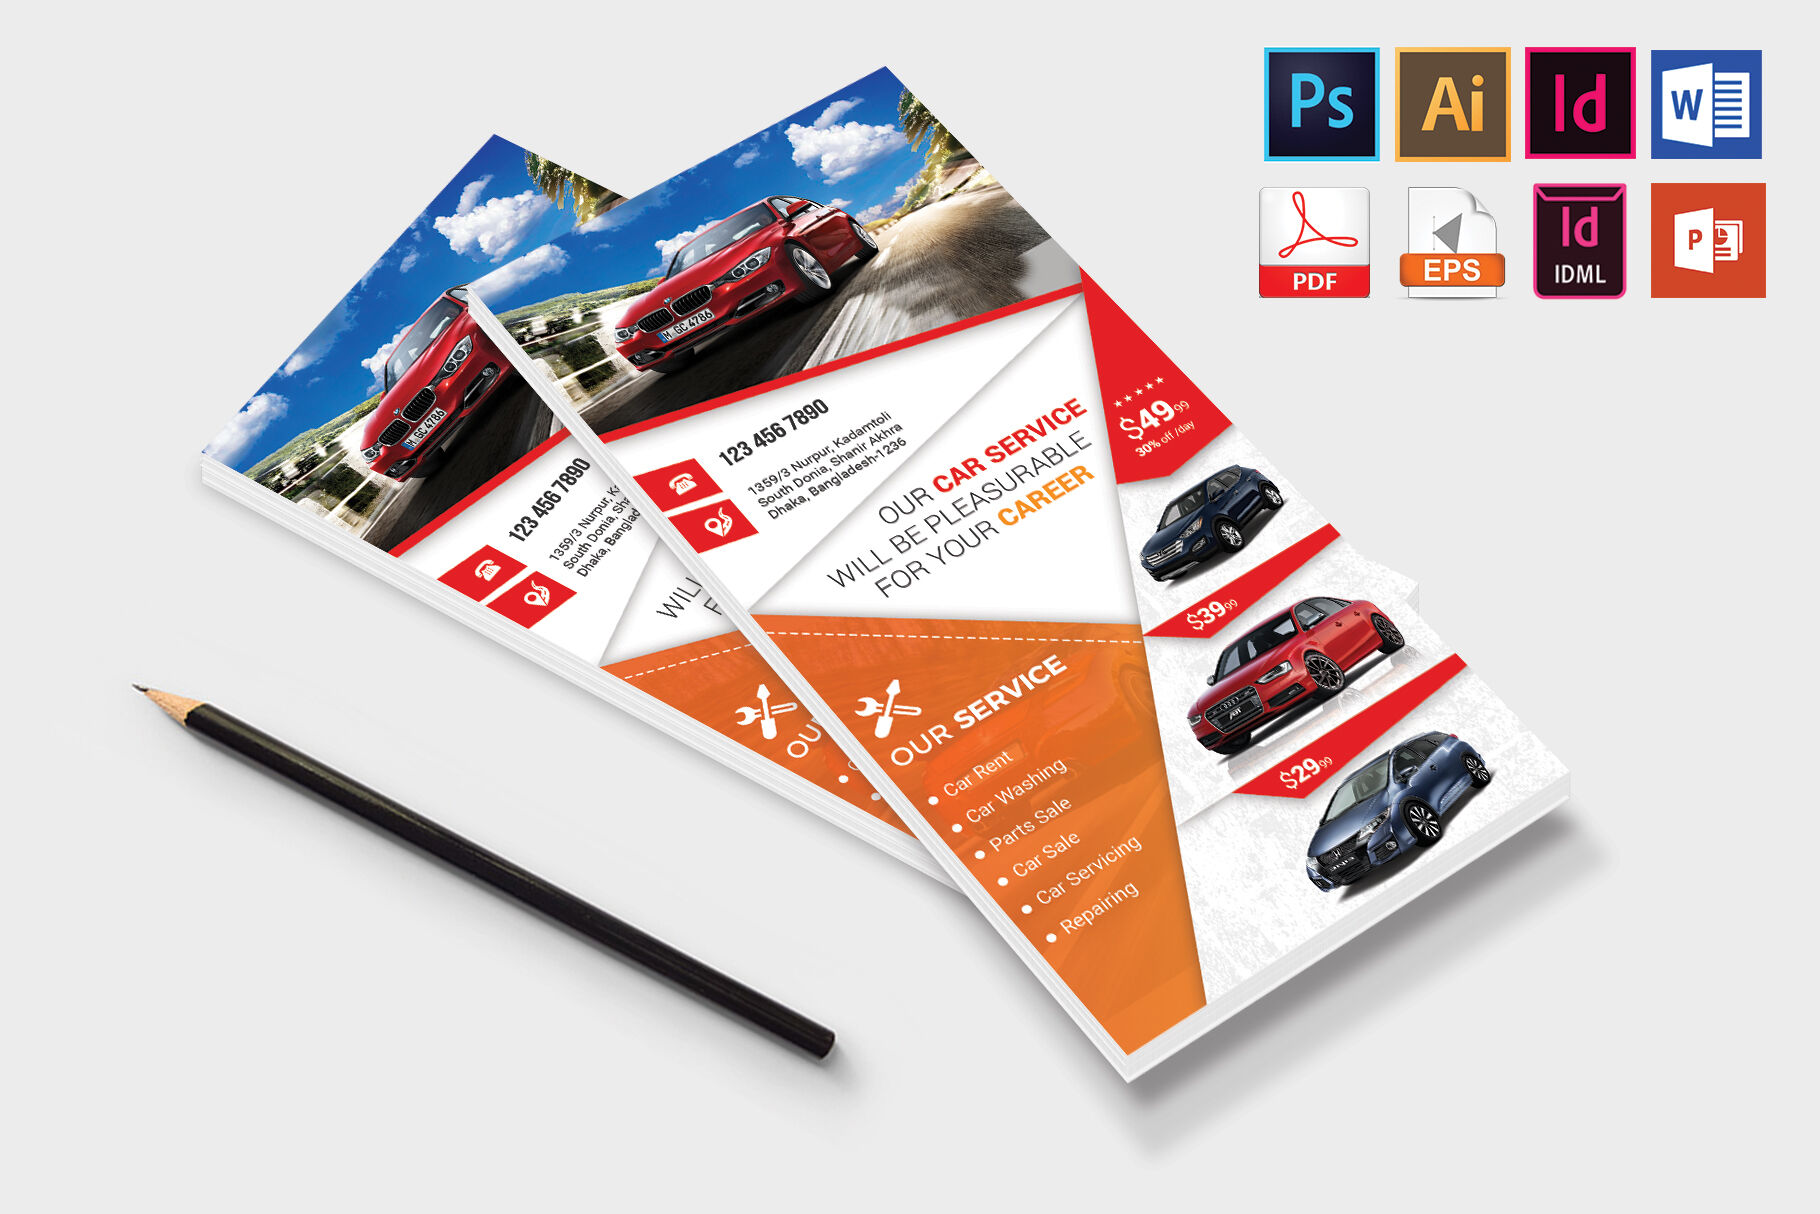 Download Vehicle Branding Mockup Psd Free Yellowimages